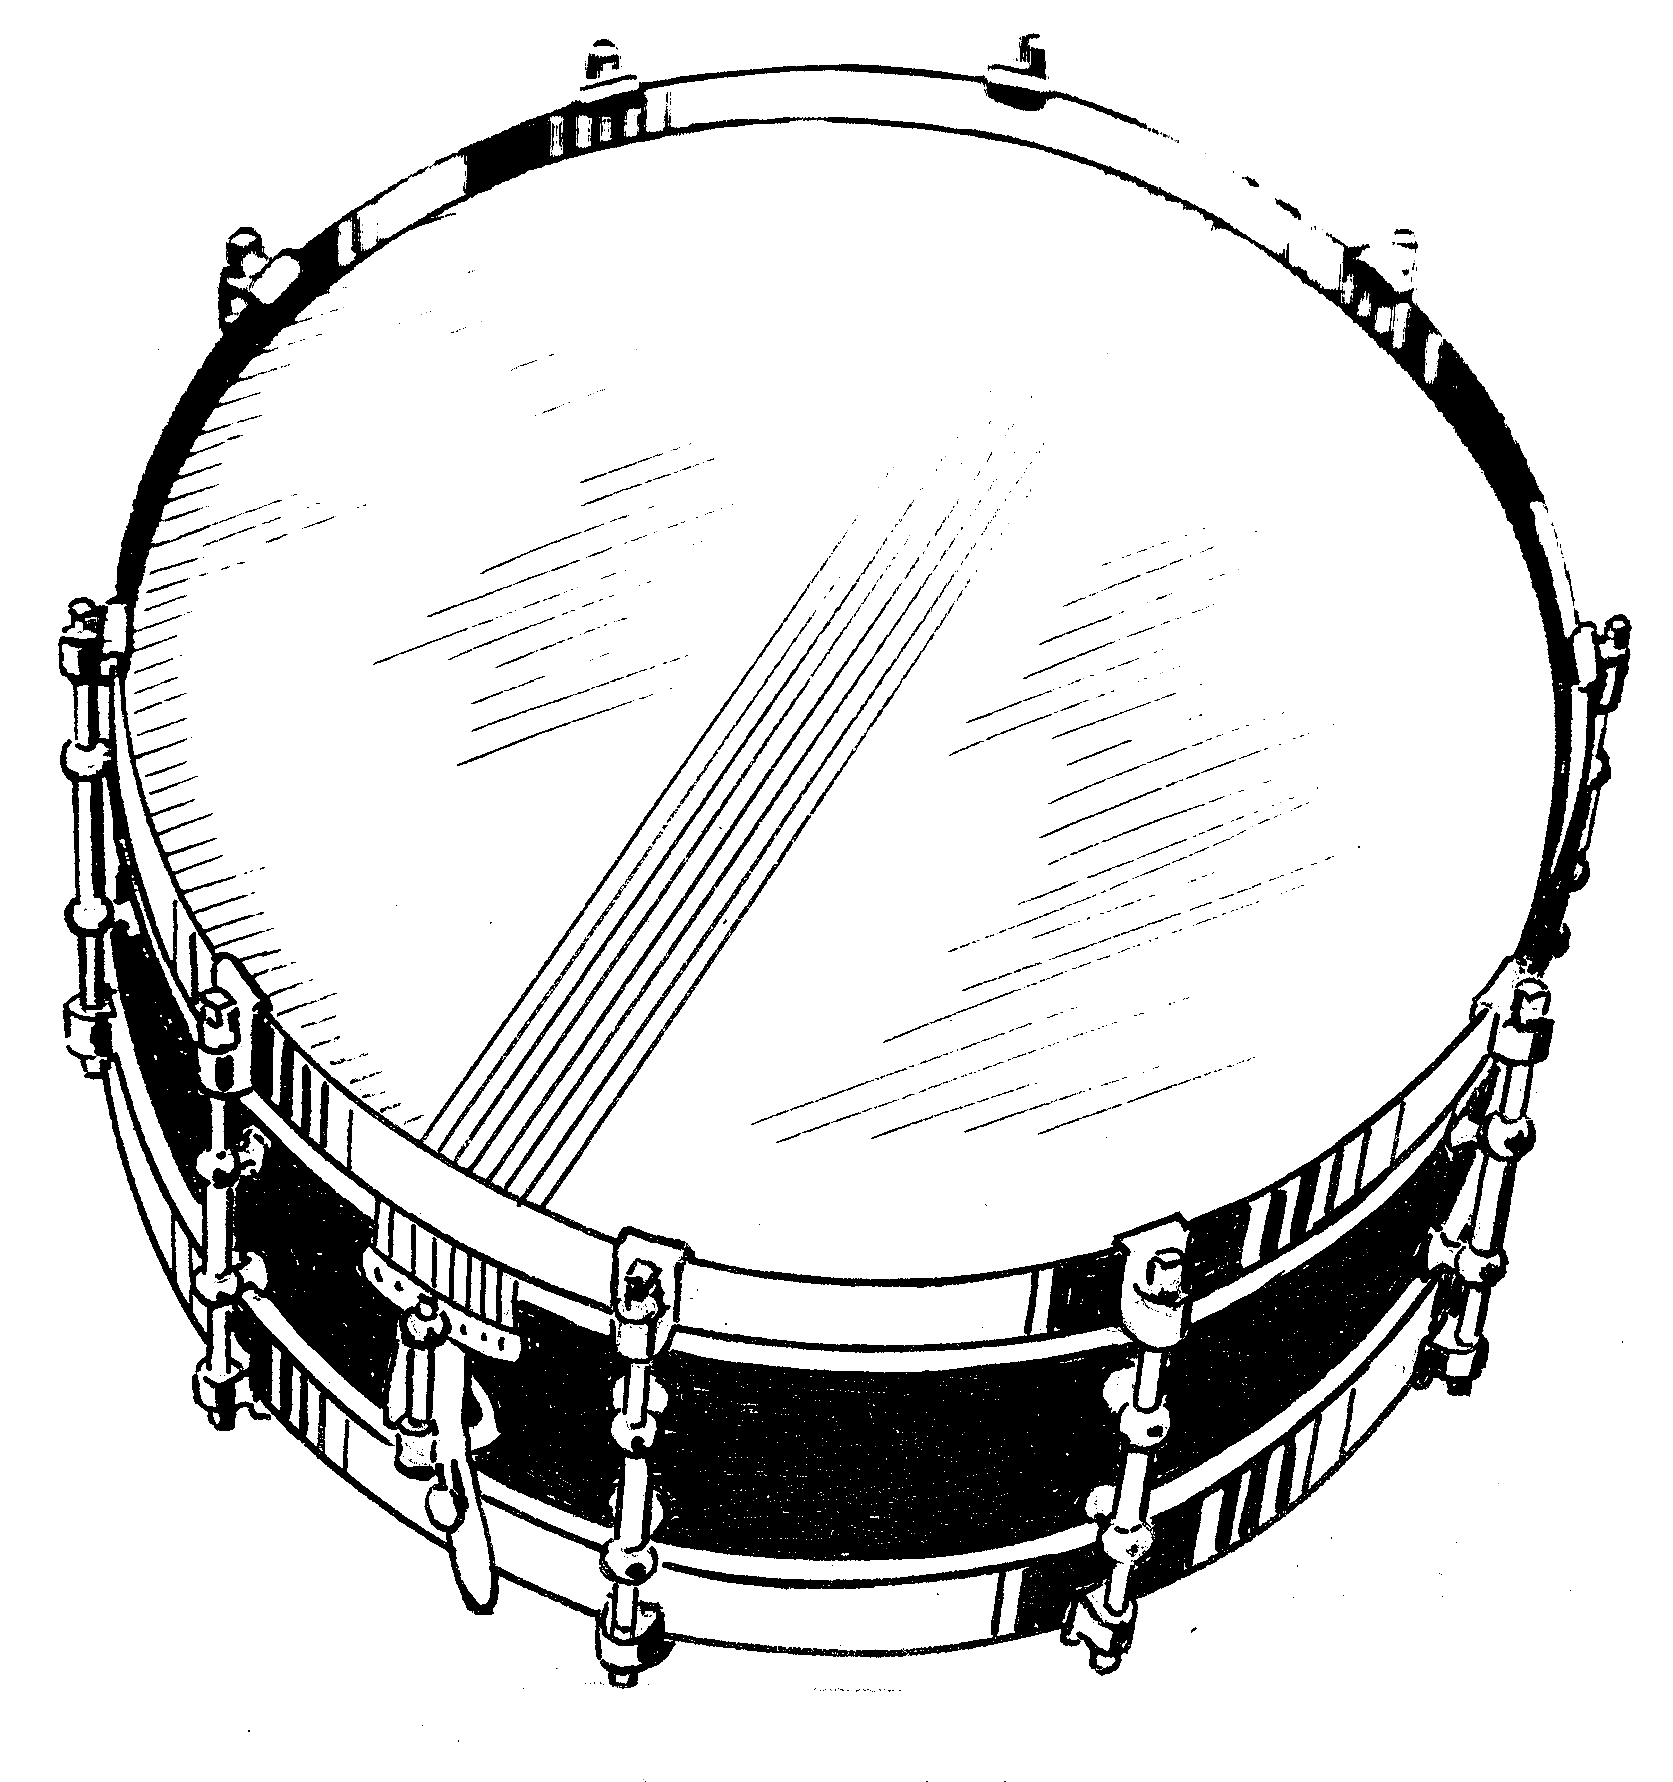 Snare Drum Png Black And White - File:snare Drum (Psf).png, Transparent background PNG HD thumbnail